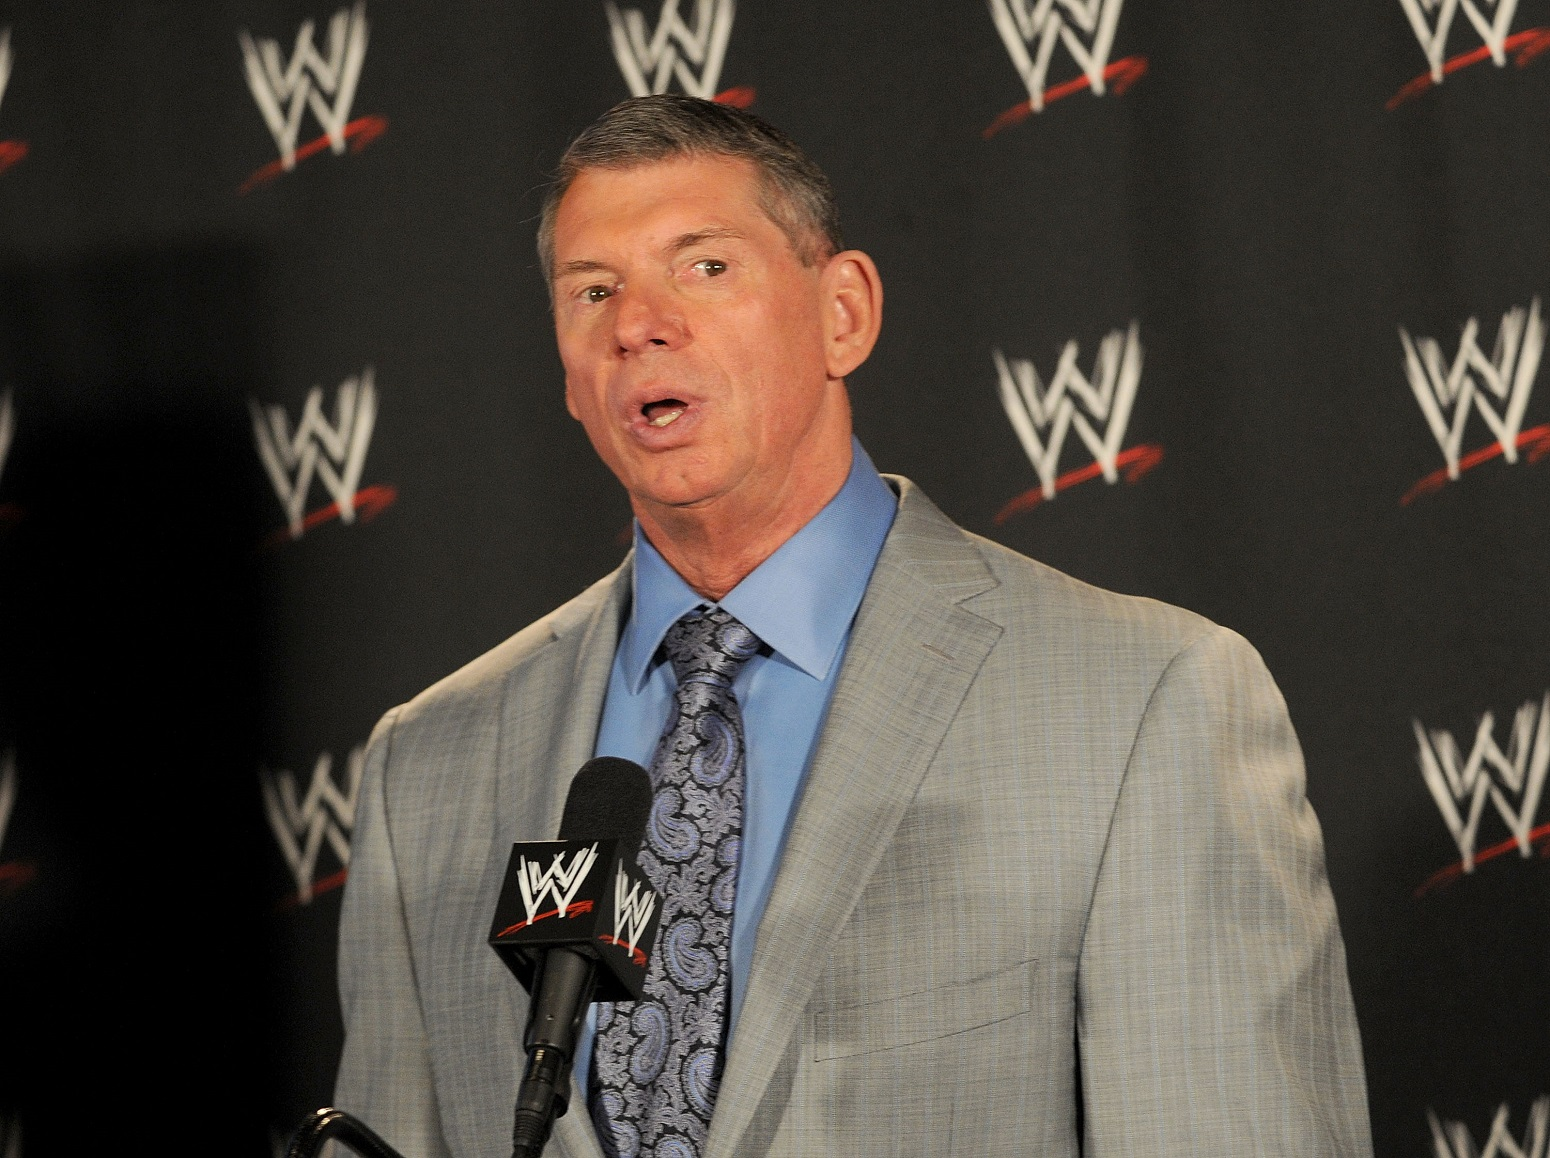 WWE Vince McMahon KKK incident